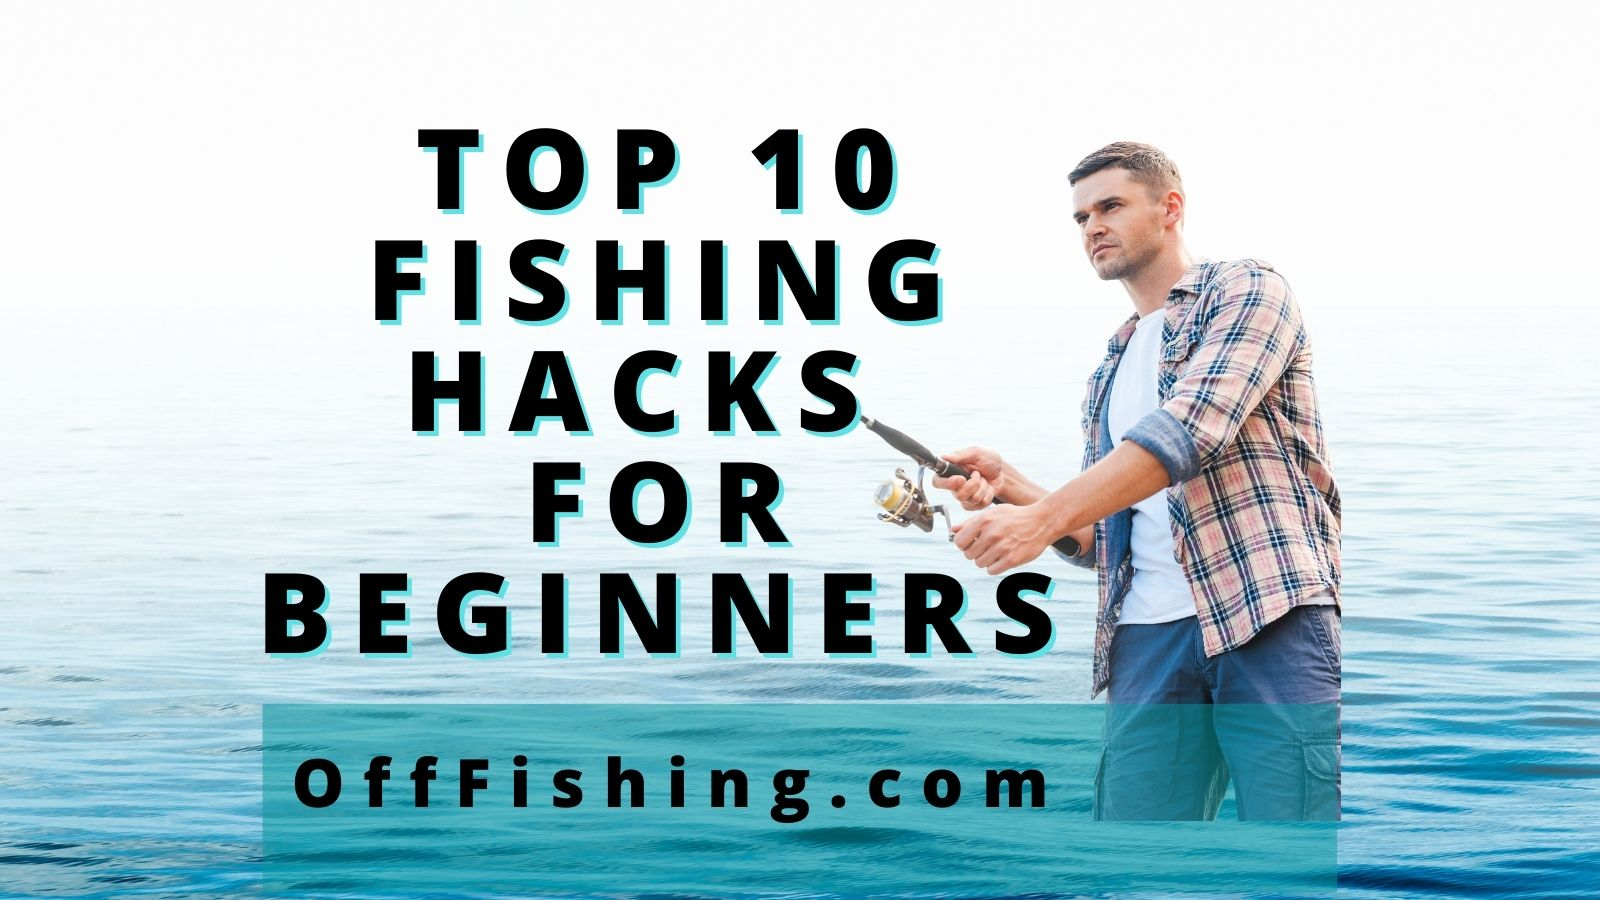 Top 10 Fishing Hacks Tips Tricks and Techniques for Beginners